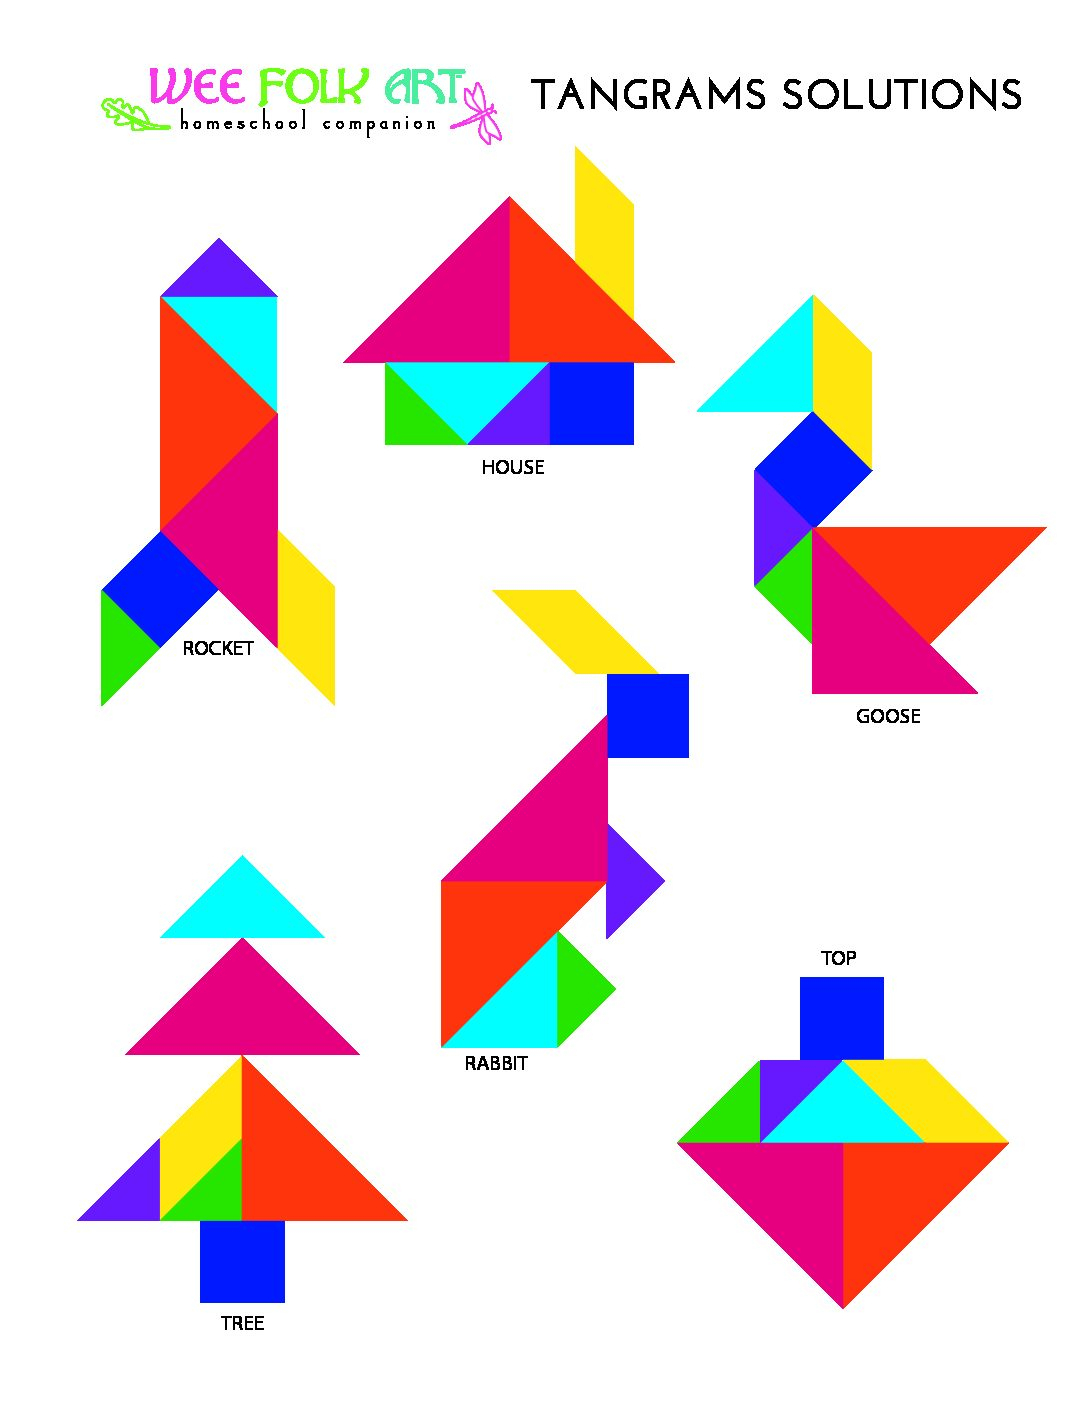 Tangrams Puzzles Solutions - Homeschool Companion à Tangram Simple